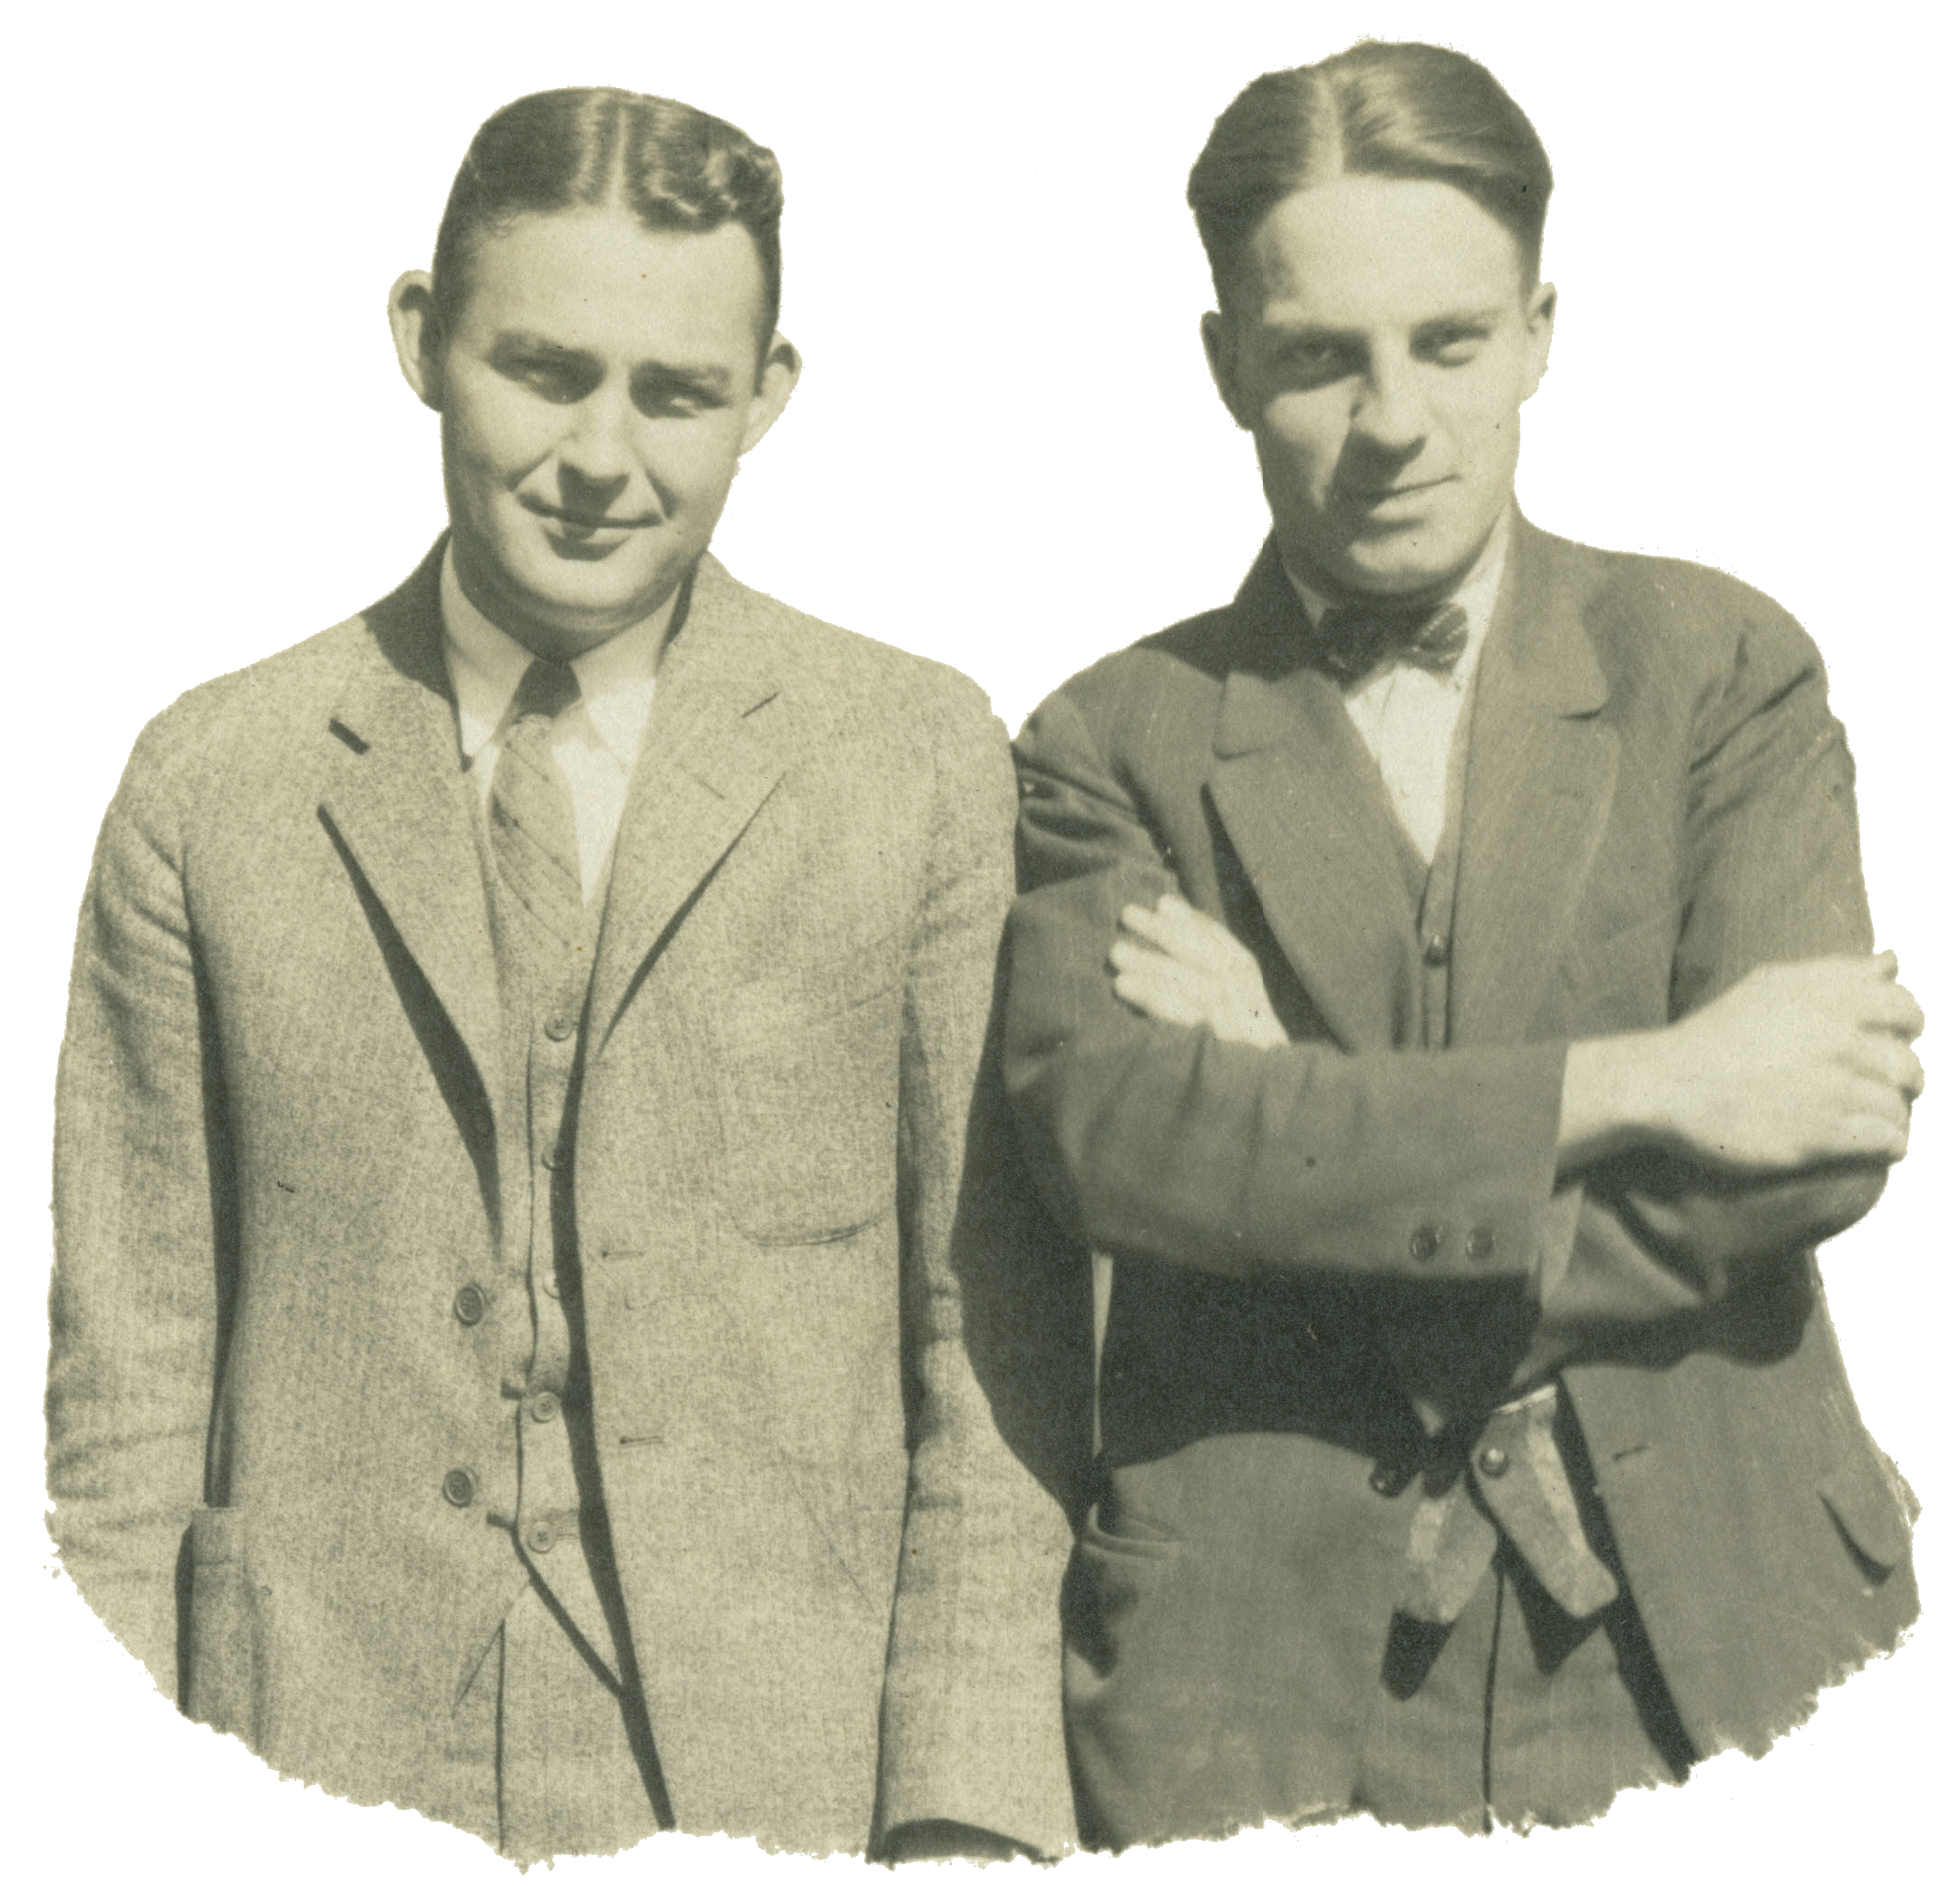 Founders of Oster Herman Oster and Russel Tewksbury